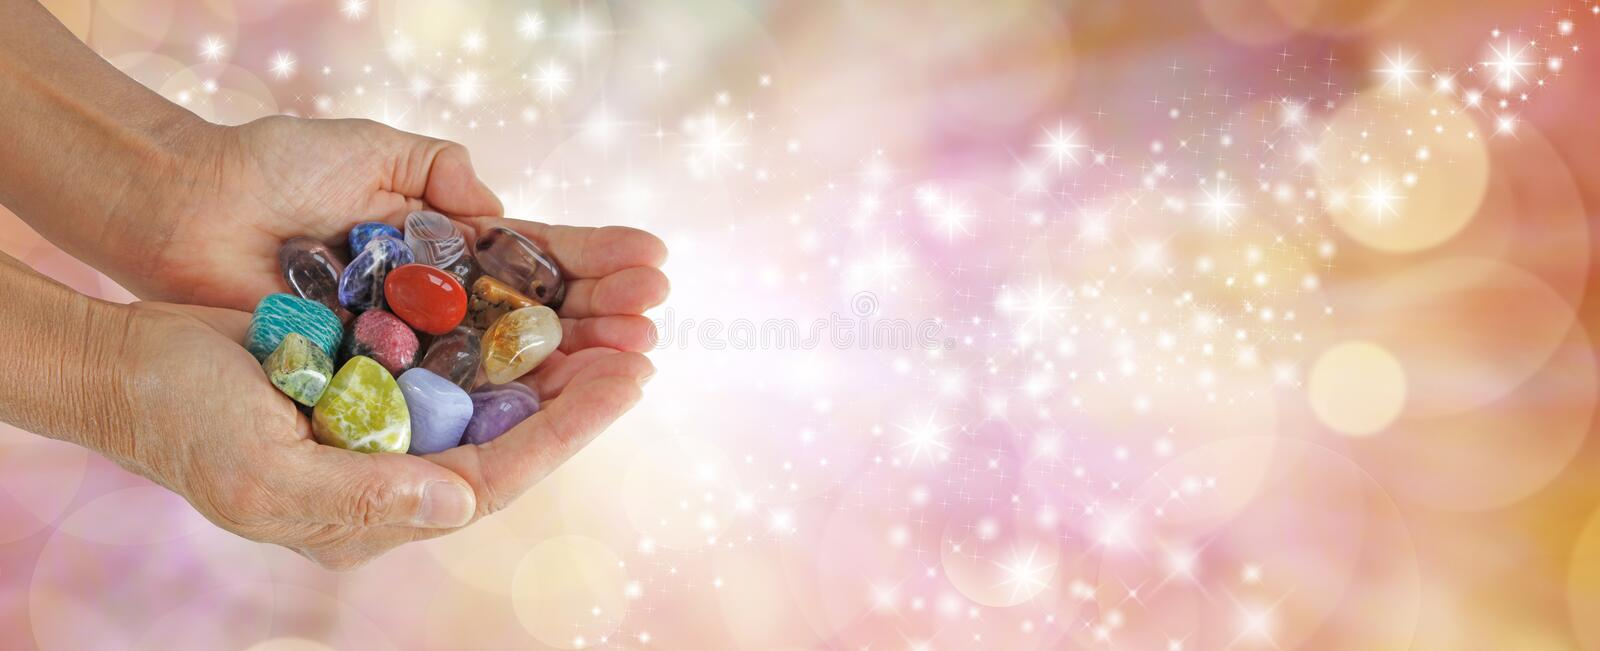 Crystal Therapist Sparkling Website Banner stock photos